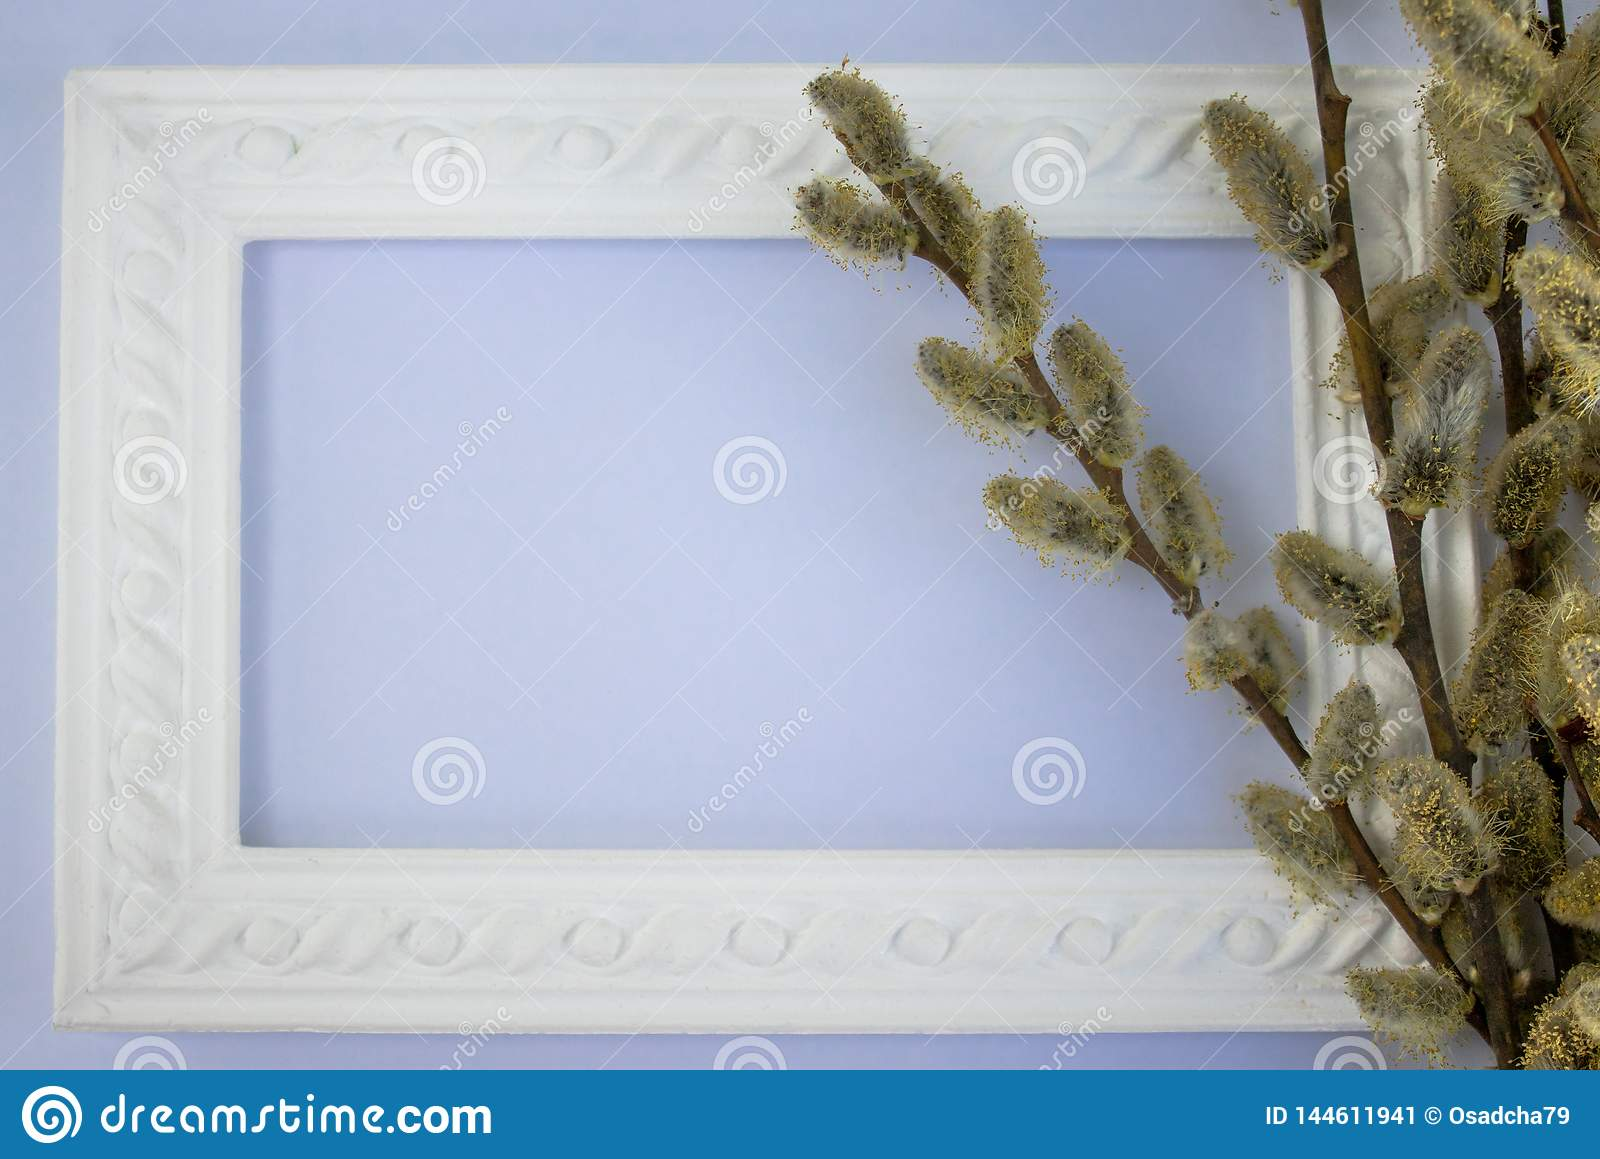 White frame with branches of buds of yellow willow on a pink - blue background. Copy space in the middle for your text